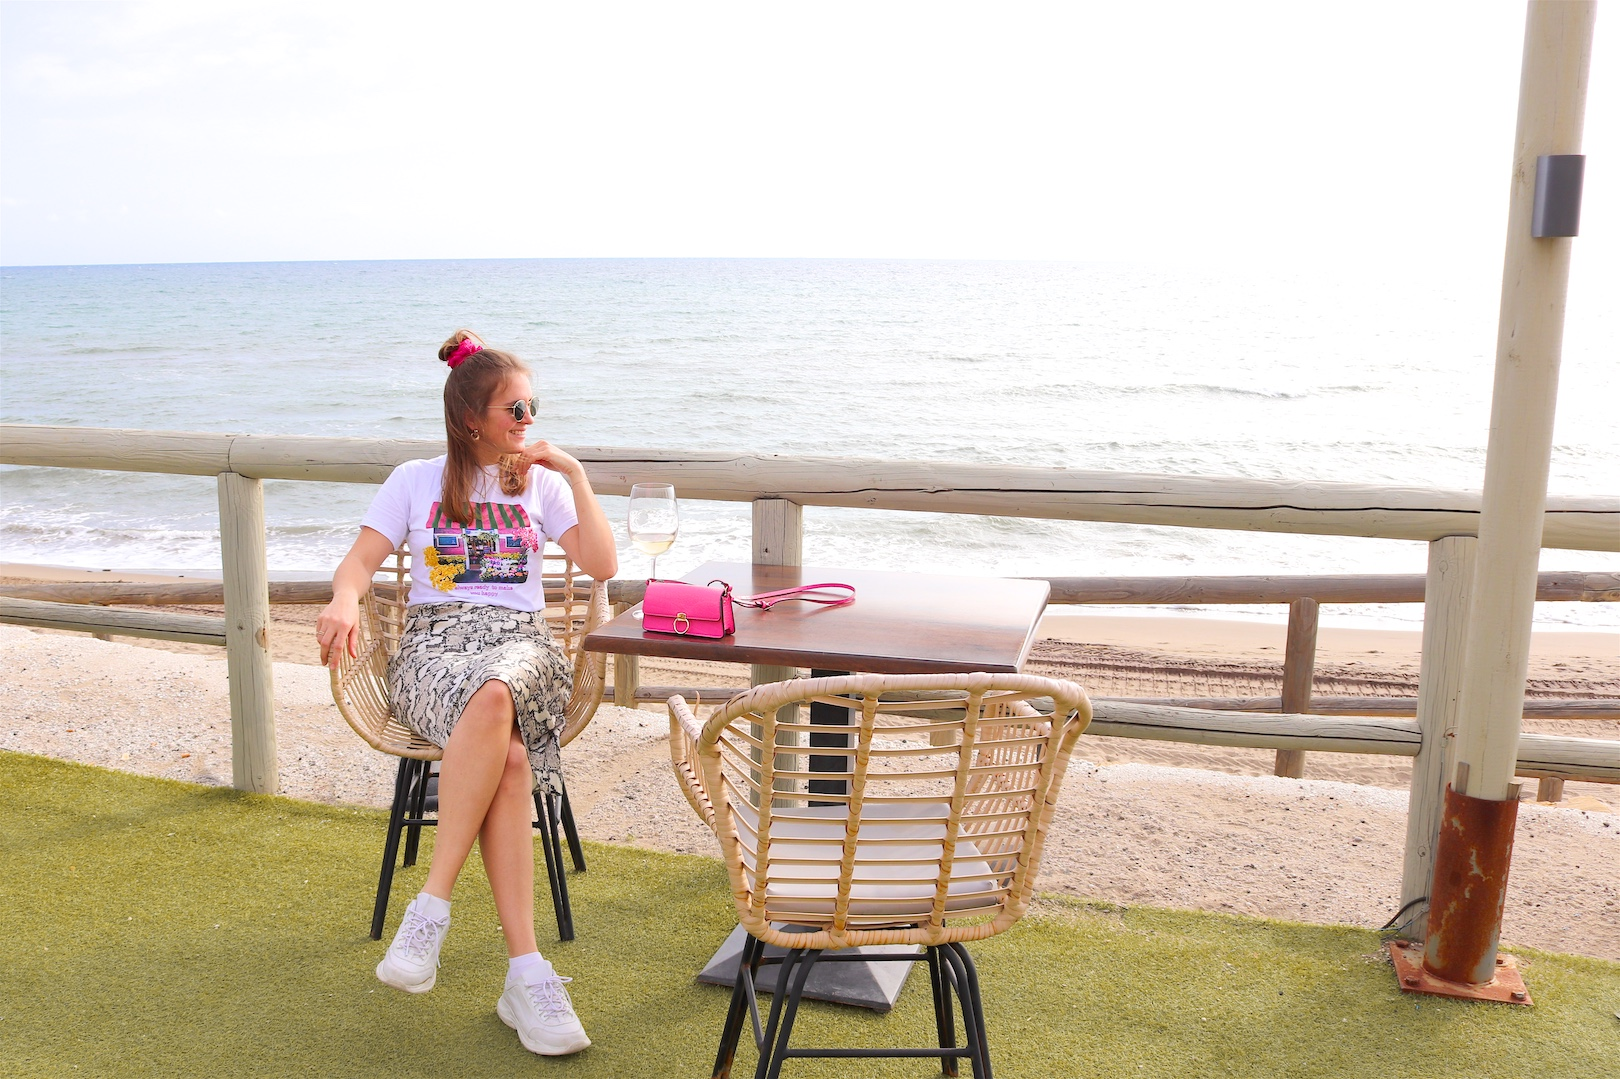 Beach Lunch. Fashion and Style Blog Girl from Heartfelt Hunt. Girl with blonde half-up half-down messy bun and pink scrunchie wearing a graphic tee, snake print skirt, Ray-Ban sunglasses, pink mini bag and chunky sneakers.